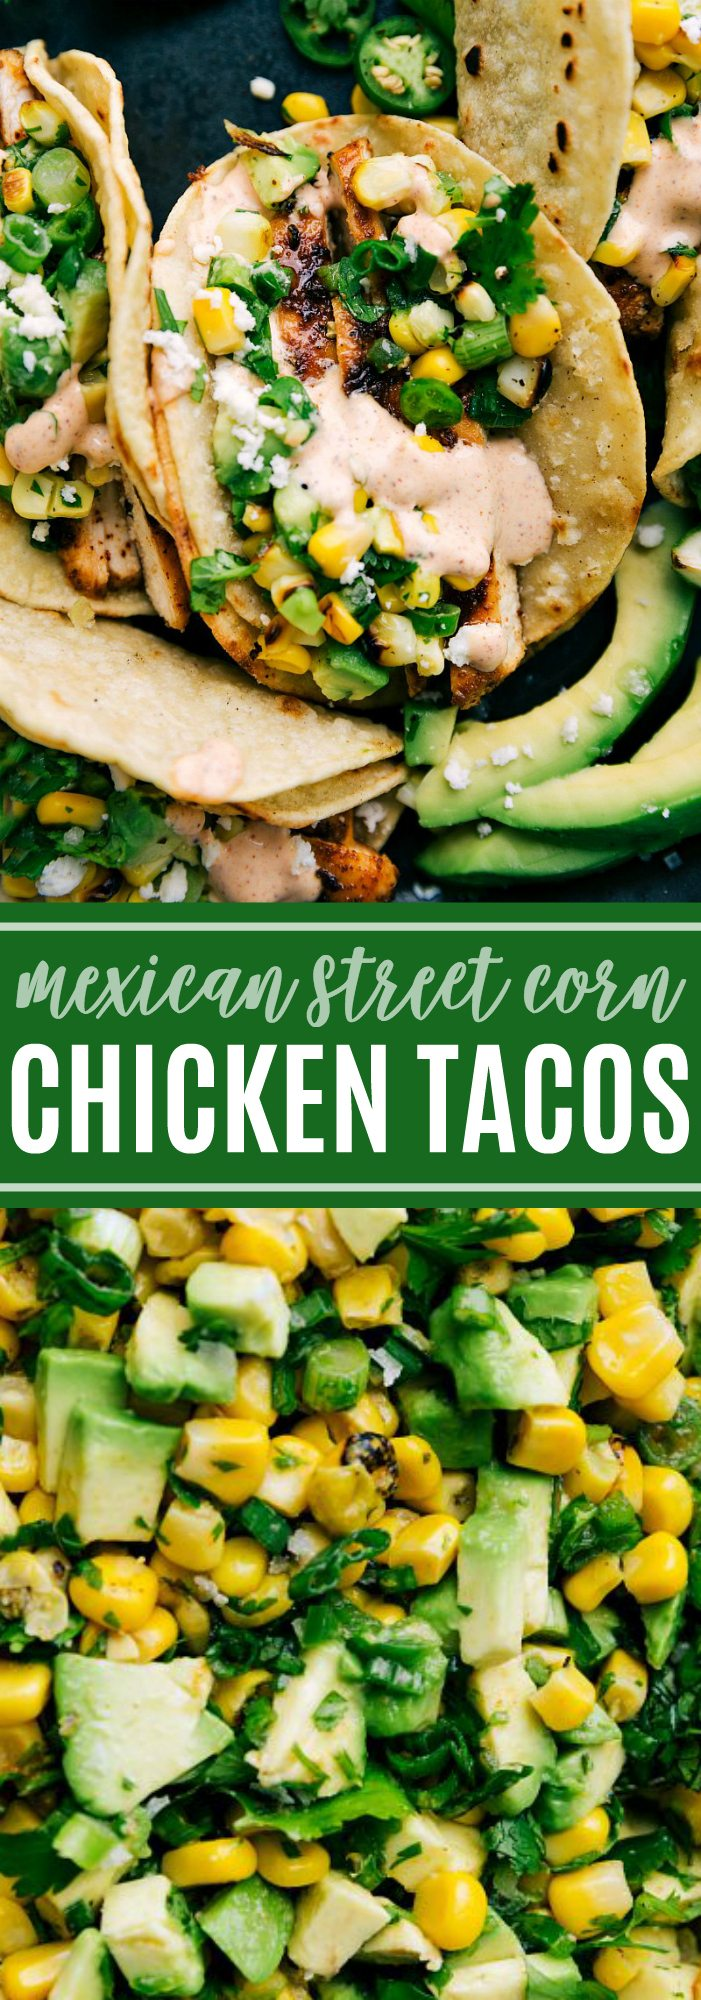 The ultimate BEST EVER chicken tacos! With a Mexican Street Corn topping and the best sauce! via chelseasmessyapron.com #taco #easy #quick #chicken #delicious #marinade #corn #avocado #salsa #sauce